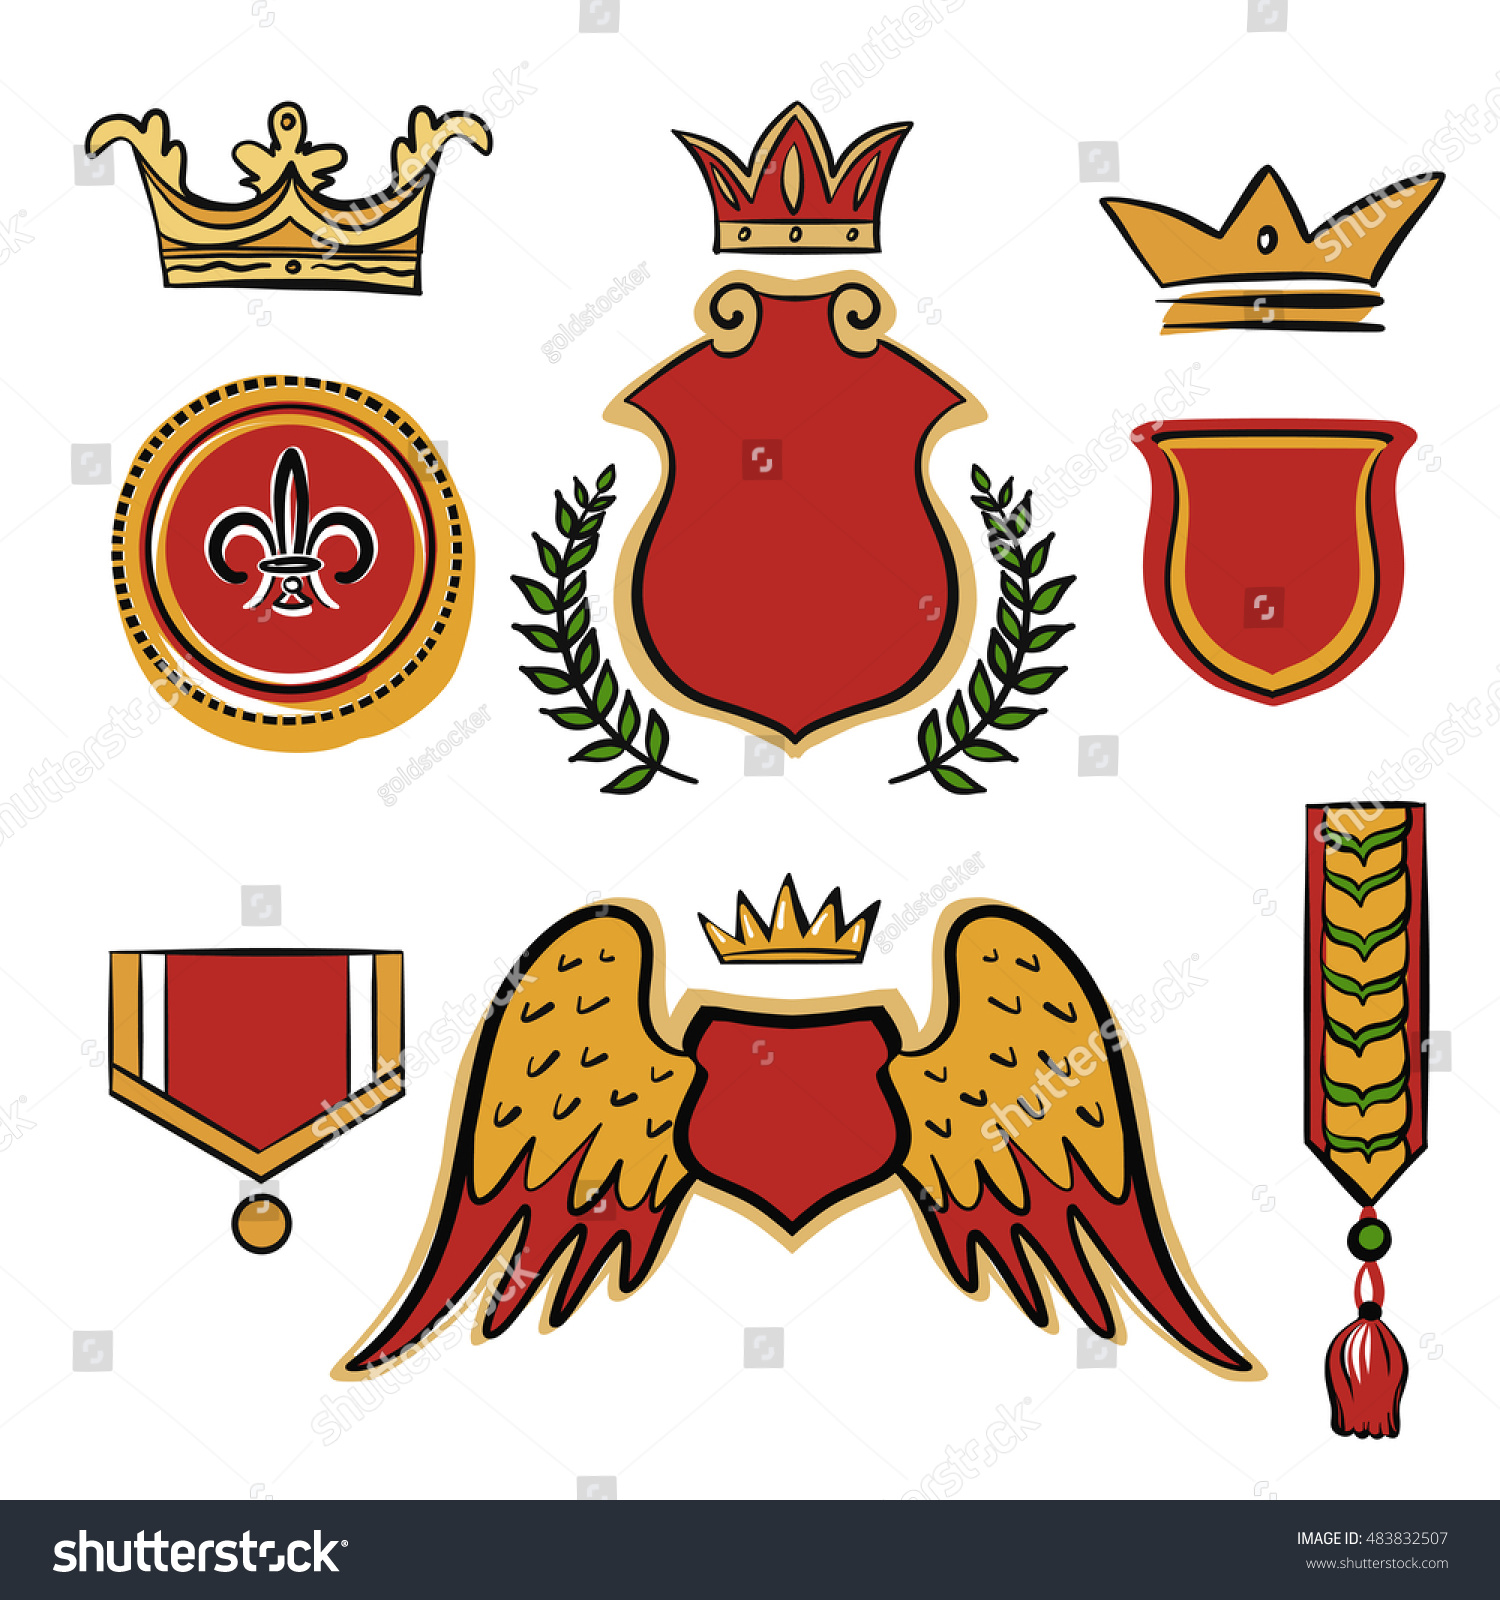 set freehand drawn vector vintage design stock vector royalty free